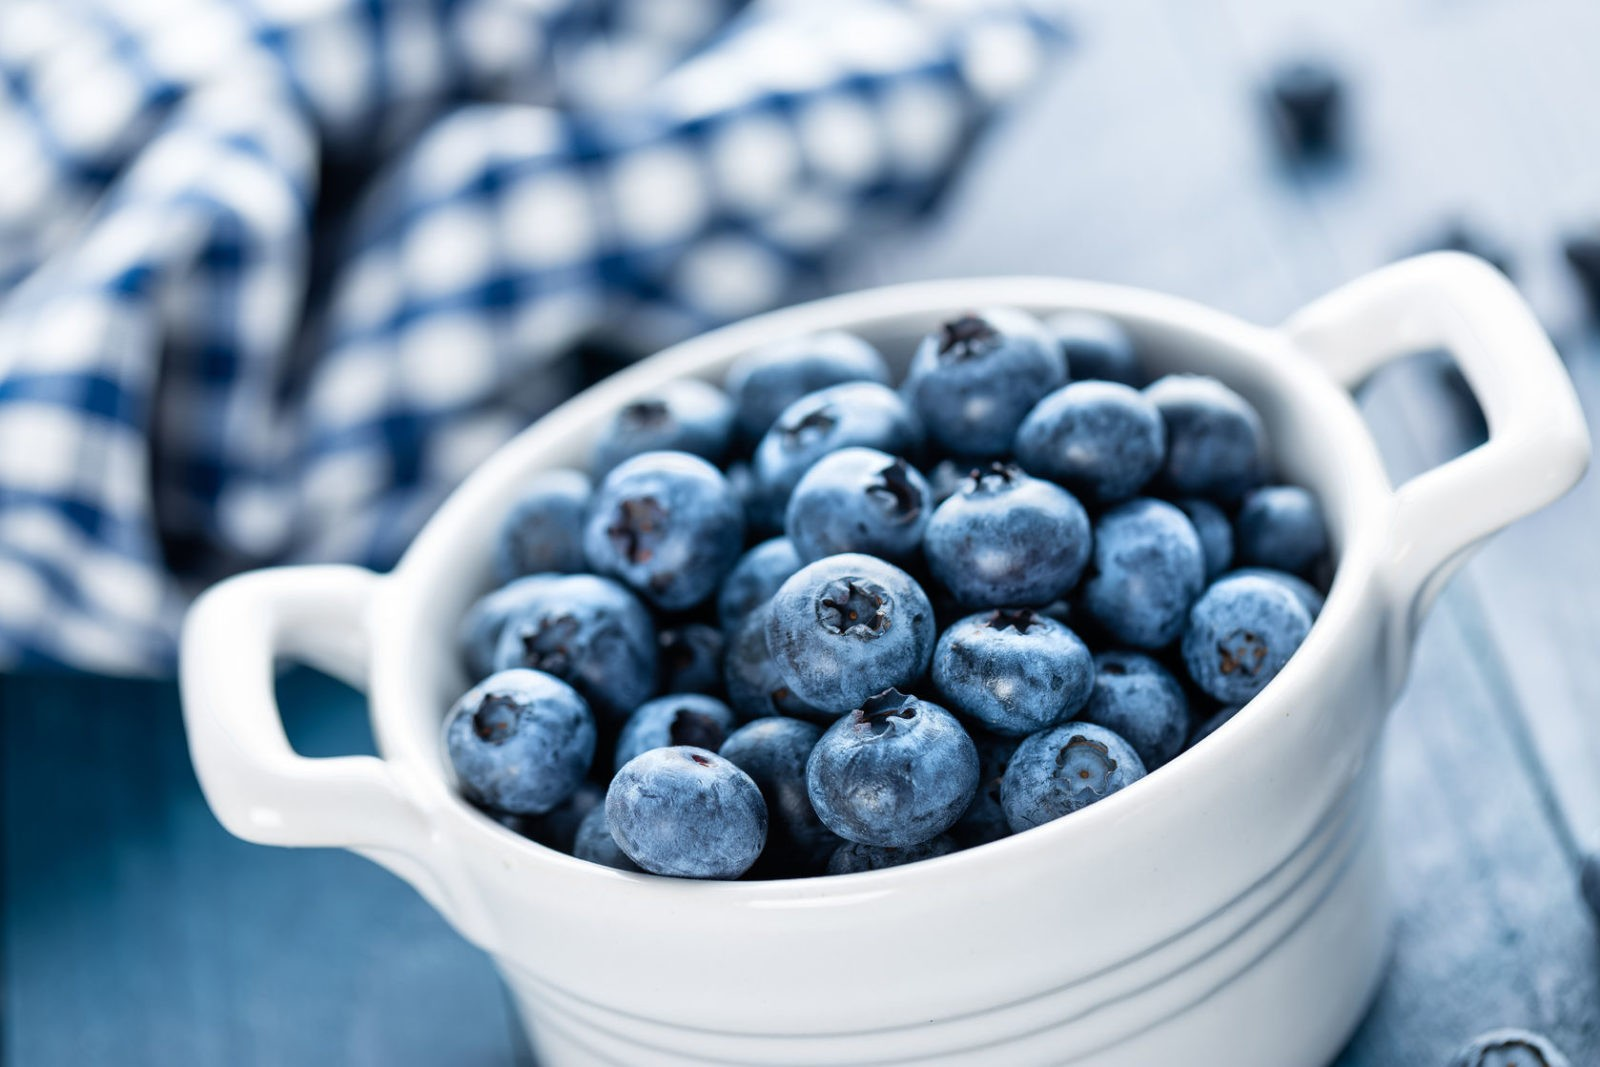 DIY blueberry face mask recipe